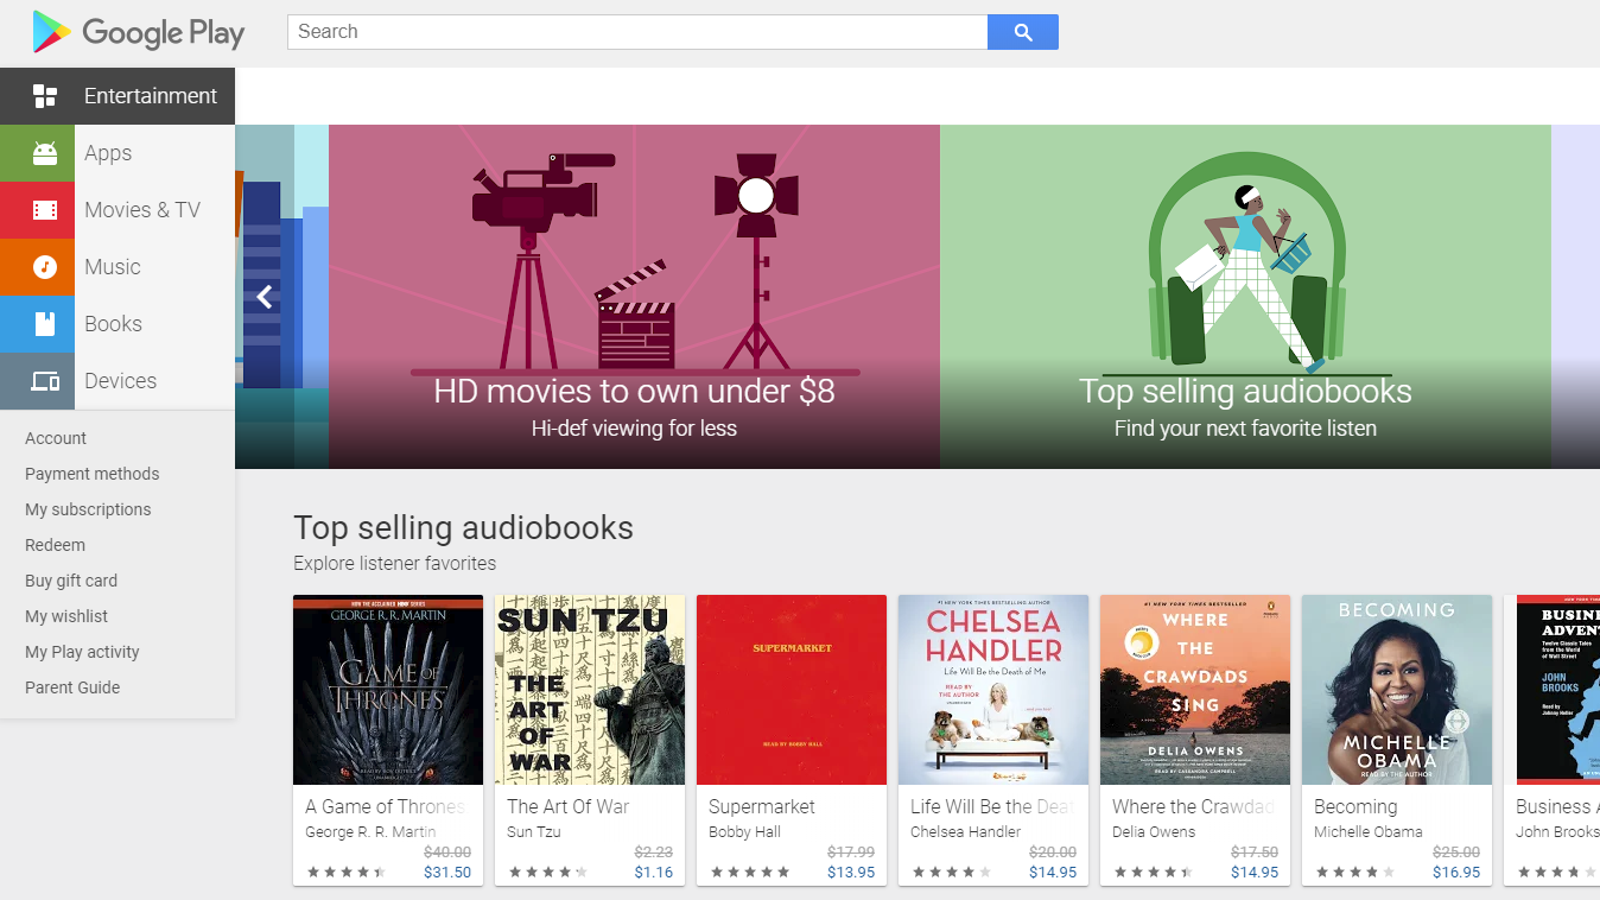 Budget Your Google Play Investing With this New In-App Setting thumbnail